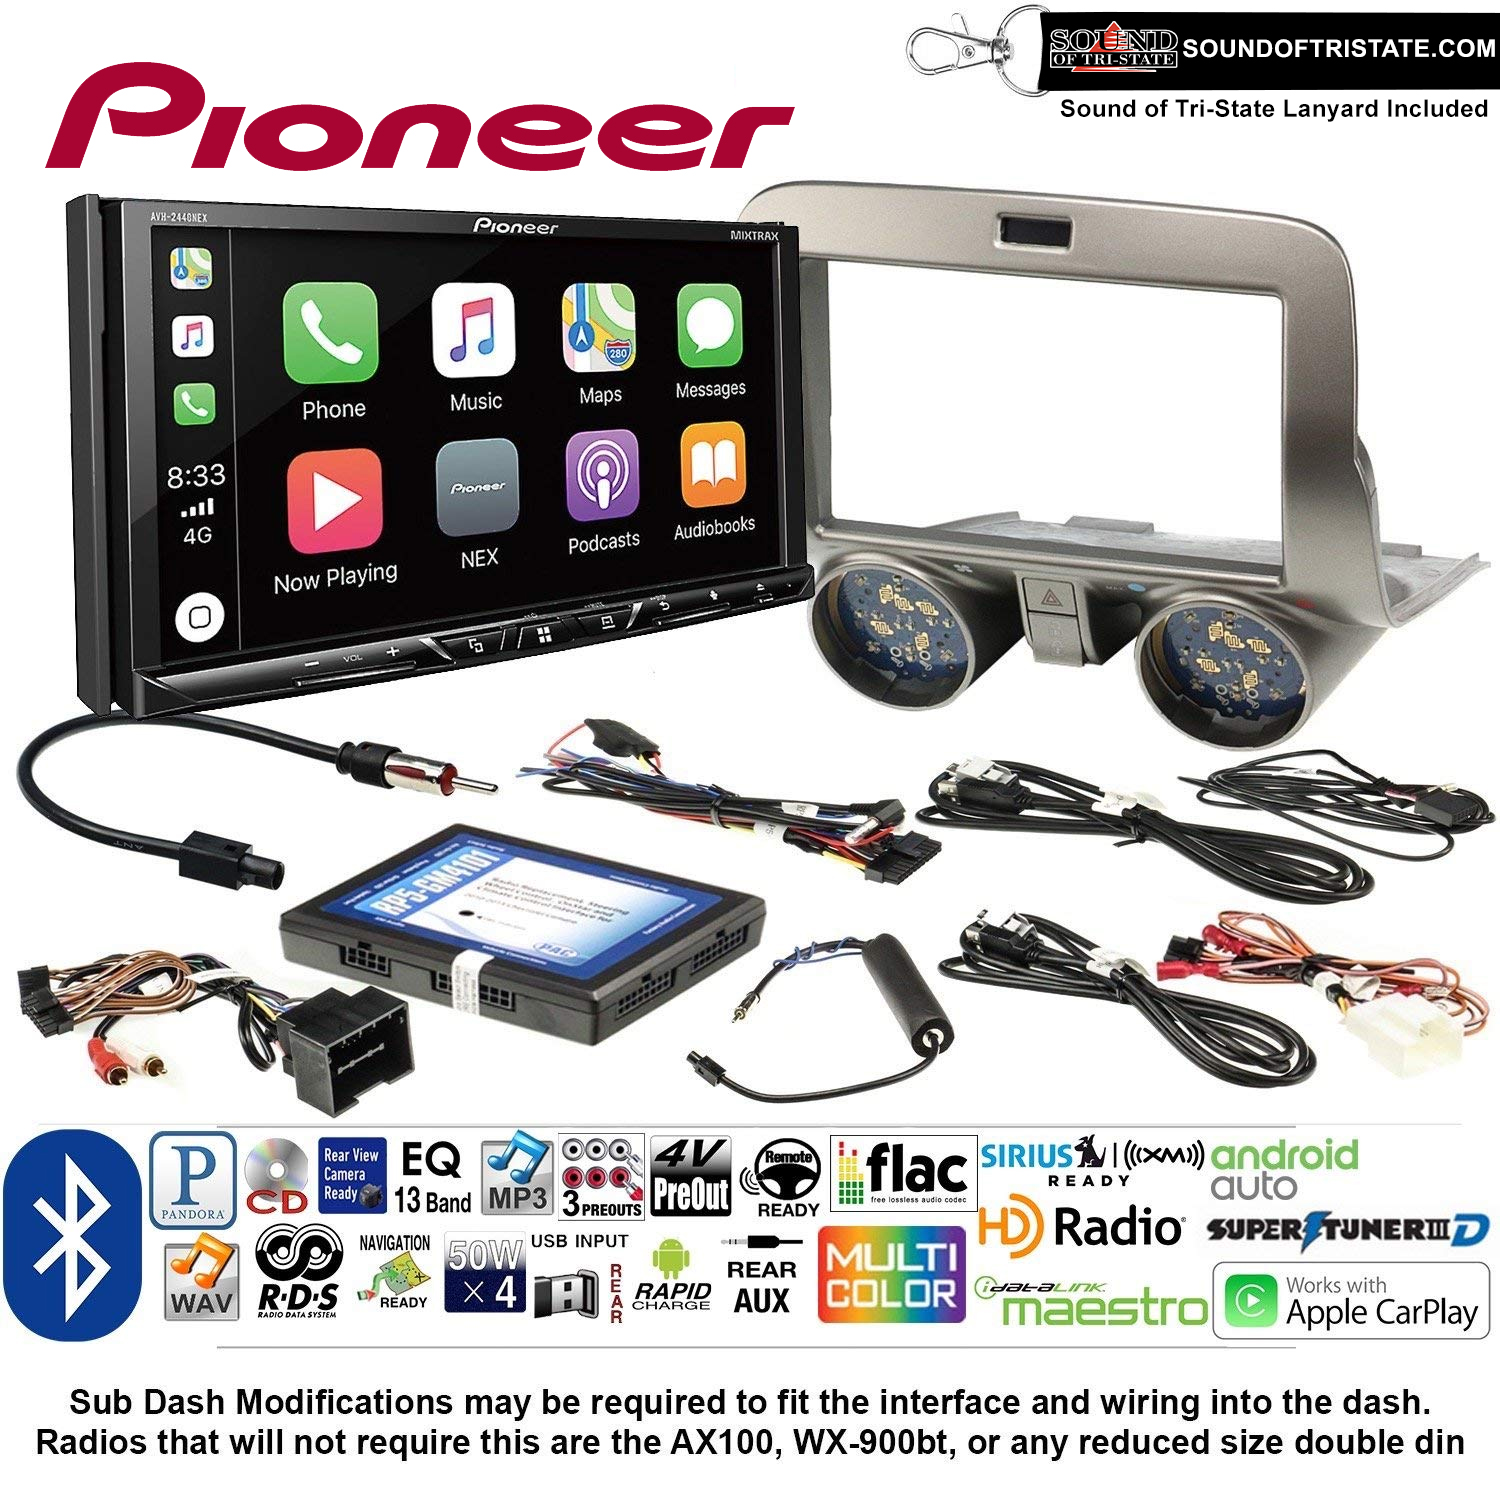 Pioneer AVH-2440NEX Double Din Radio Install Kit with Apple CarPlay, Android Auto and Bluetooth Fits 2010-2015 Chevrolet Camaro + Sound of Tri-State Lanyard